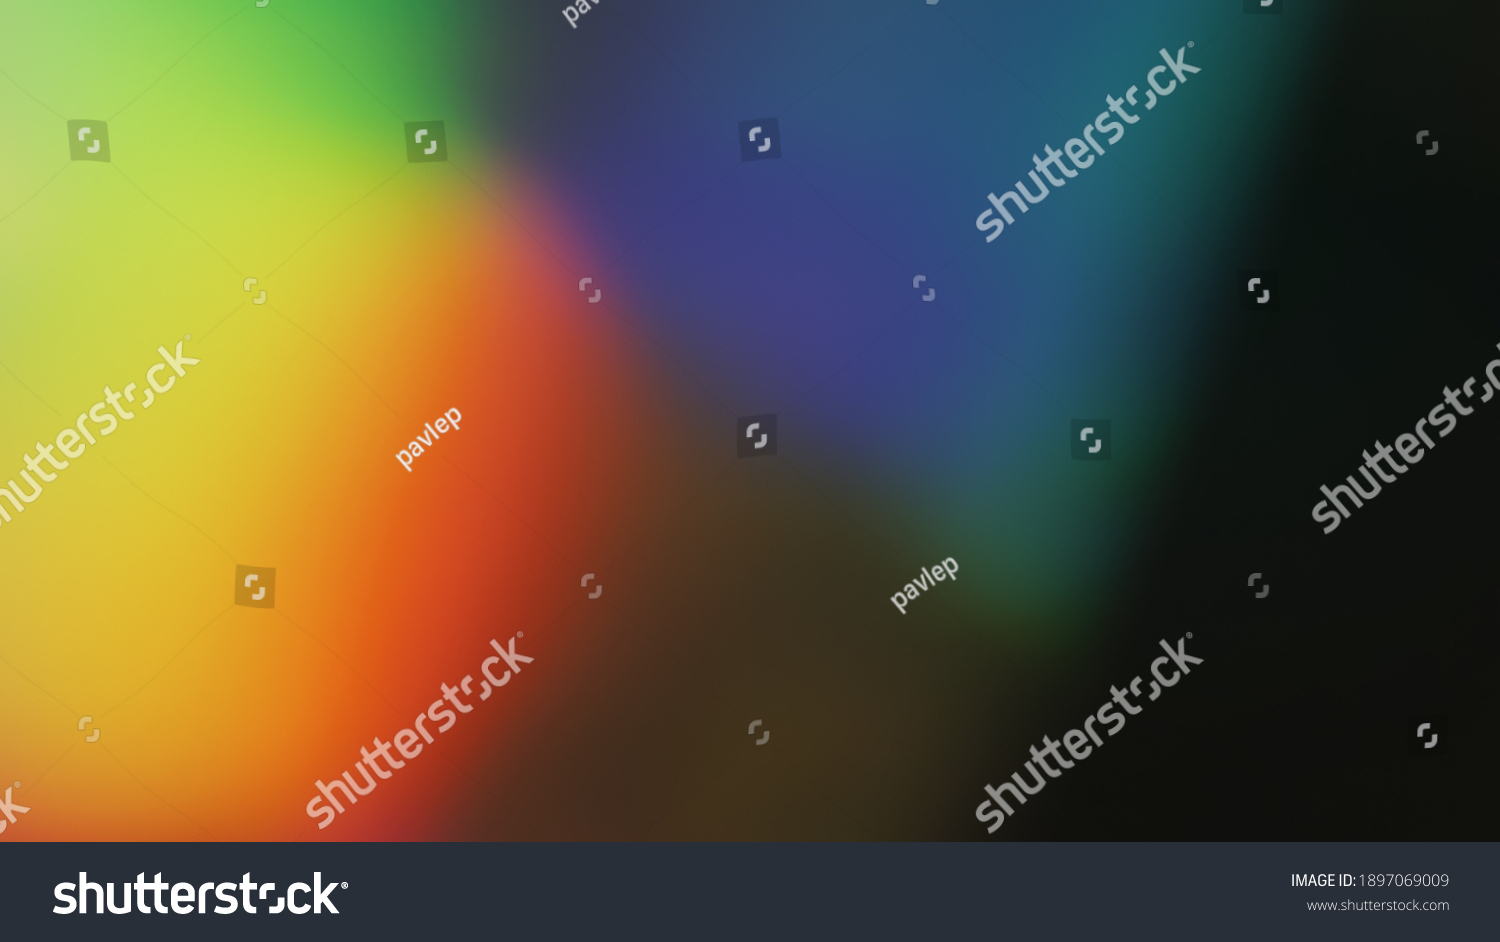 Colored Holographic Gradient Blur Abstract Background, Light Leaks - Photo Overlay for Create Vintage Film Mood, Trendy Style and Nostalgic Atmosphere for Your Photos. Use a Screen Blending Mode. #1897069009